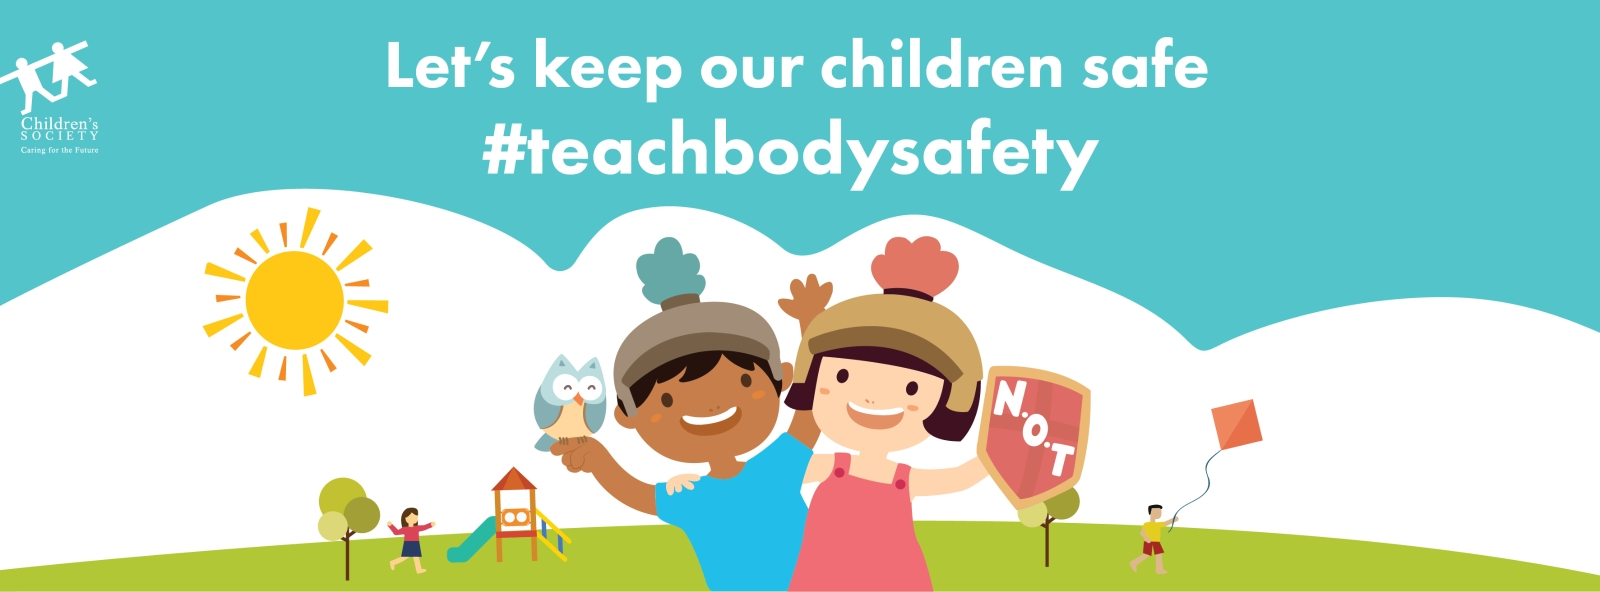 Body Safety for Children Banner - Singapore Children's Society